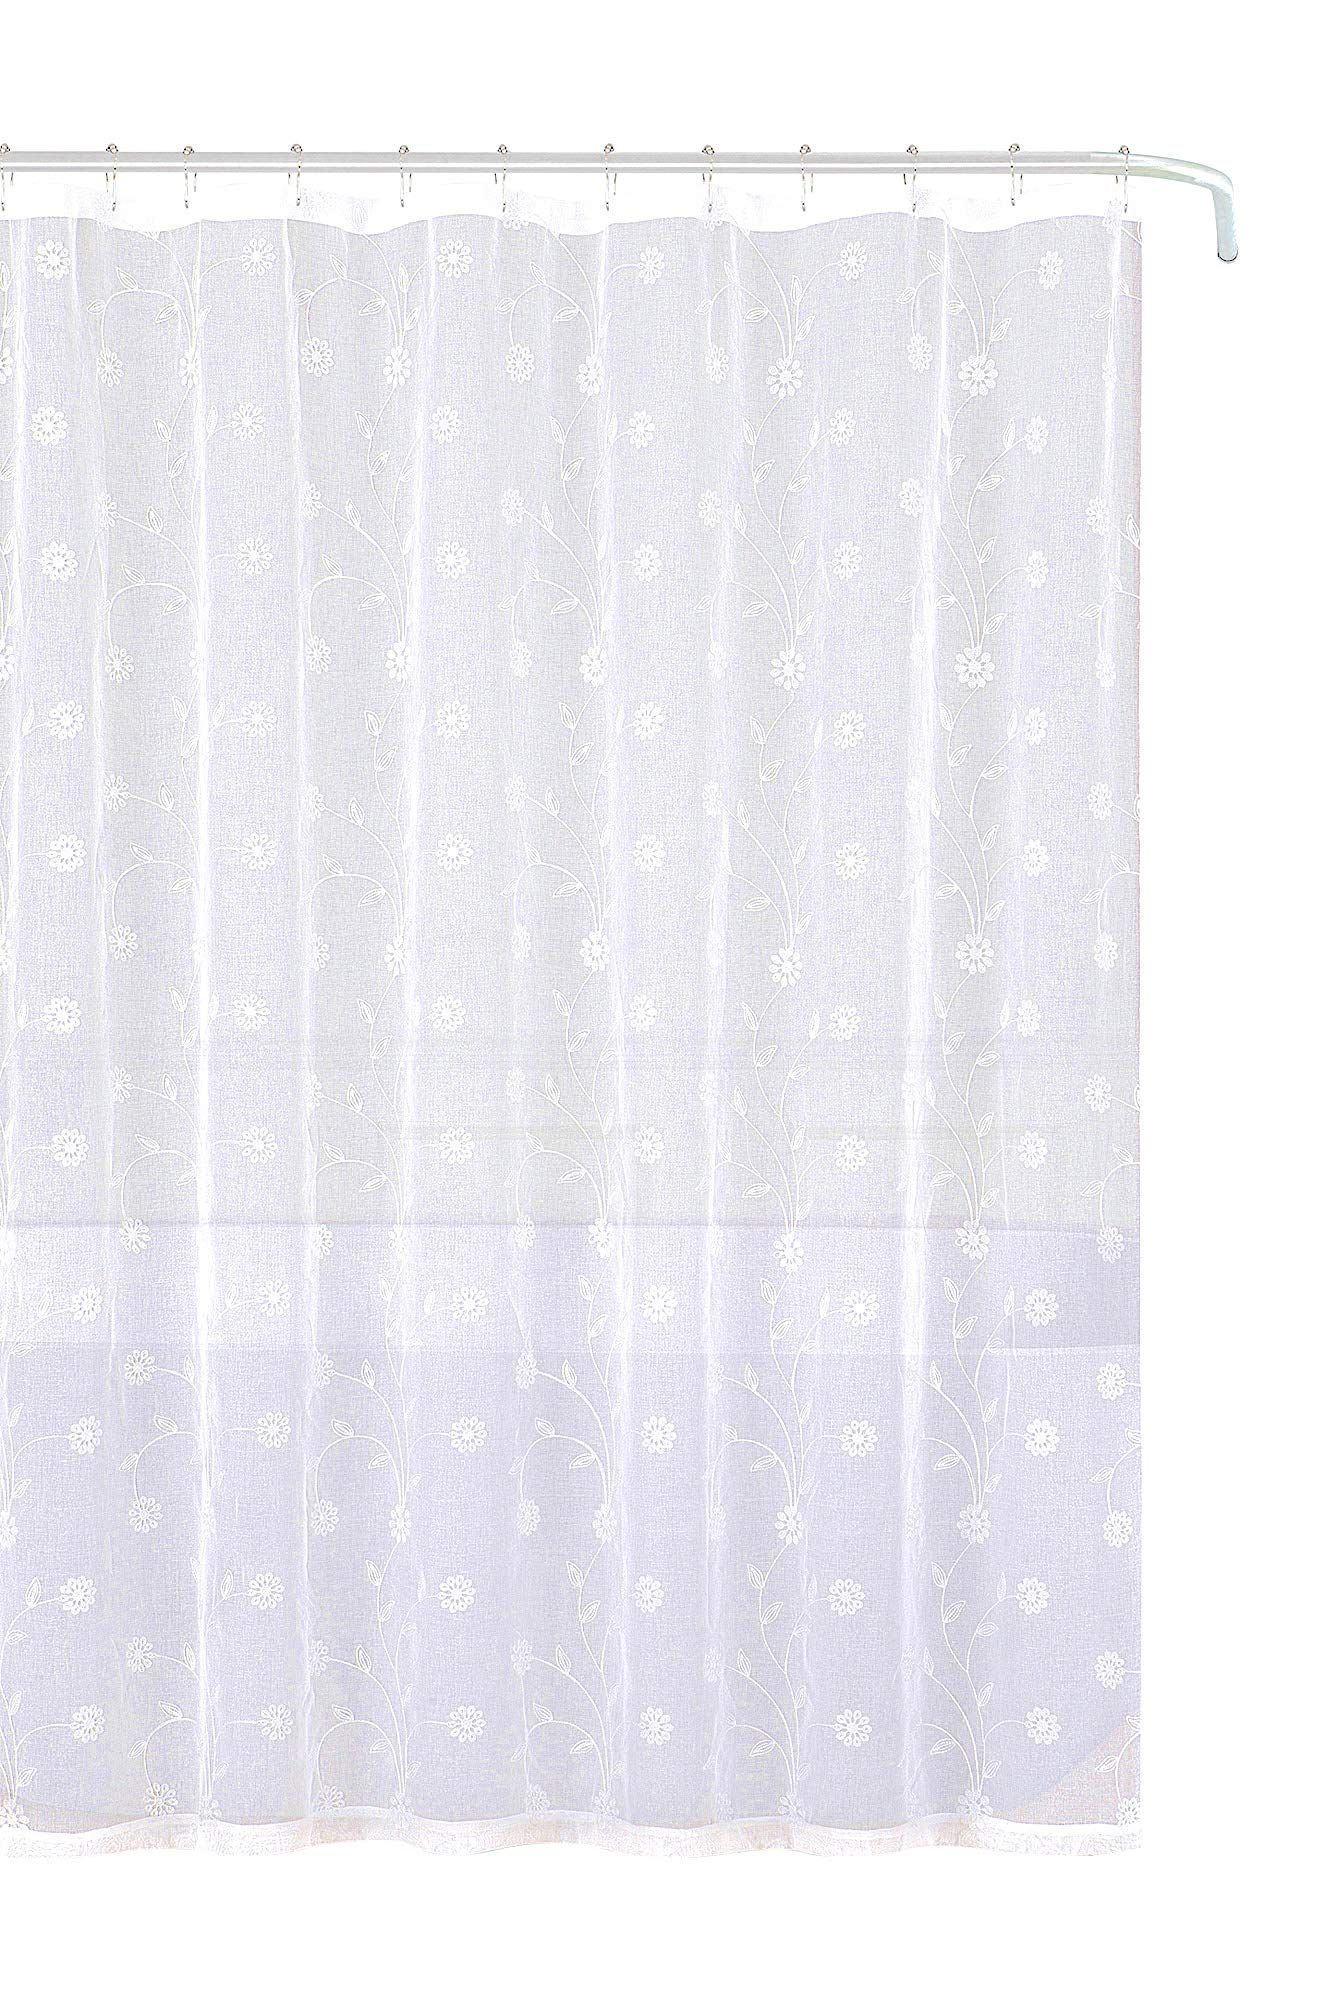 Emily Decorative Sheer Fabric Shower Curtain White Silver Embroidered Flowers 70 X 72 Lavorist Fabric Shower Curtains White Shower Curtain Curtains